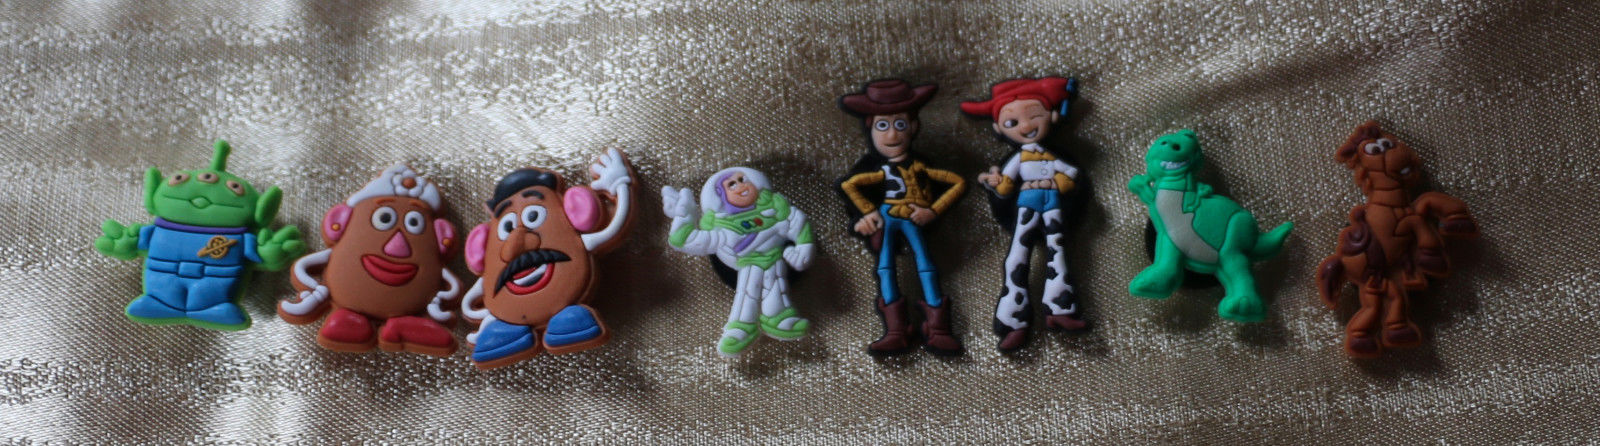 NEW 8 charms Decorative Toy Story Shoe Charm Set Girls or Boys Water Shoes Buzz